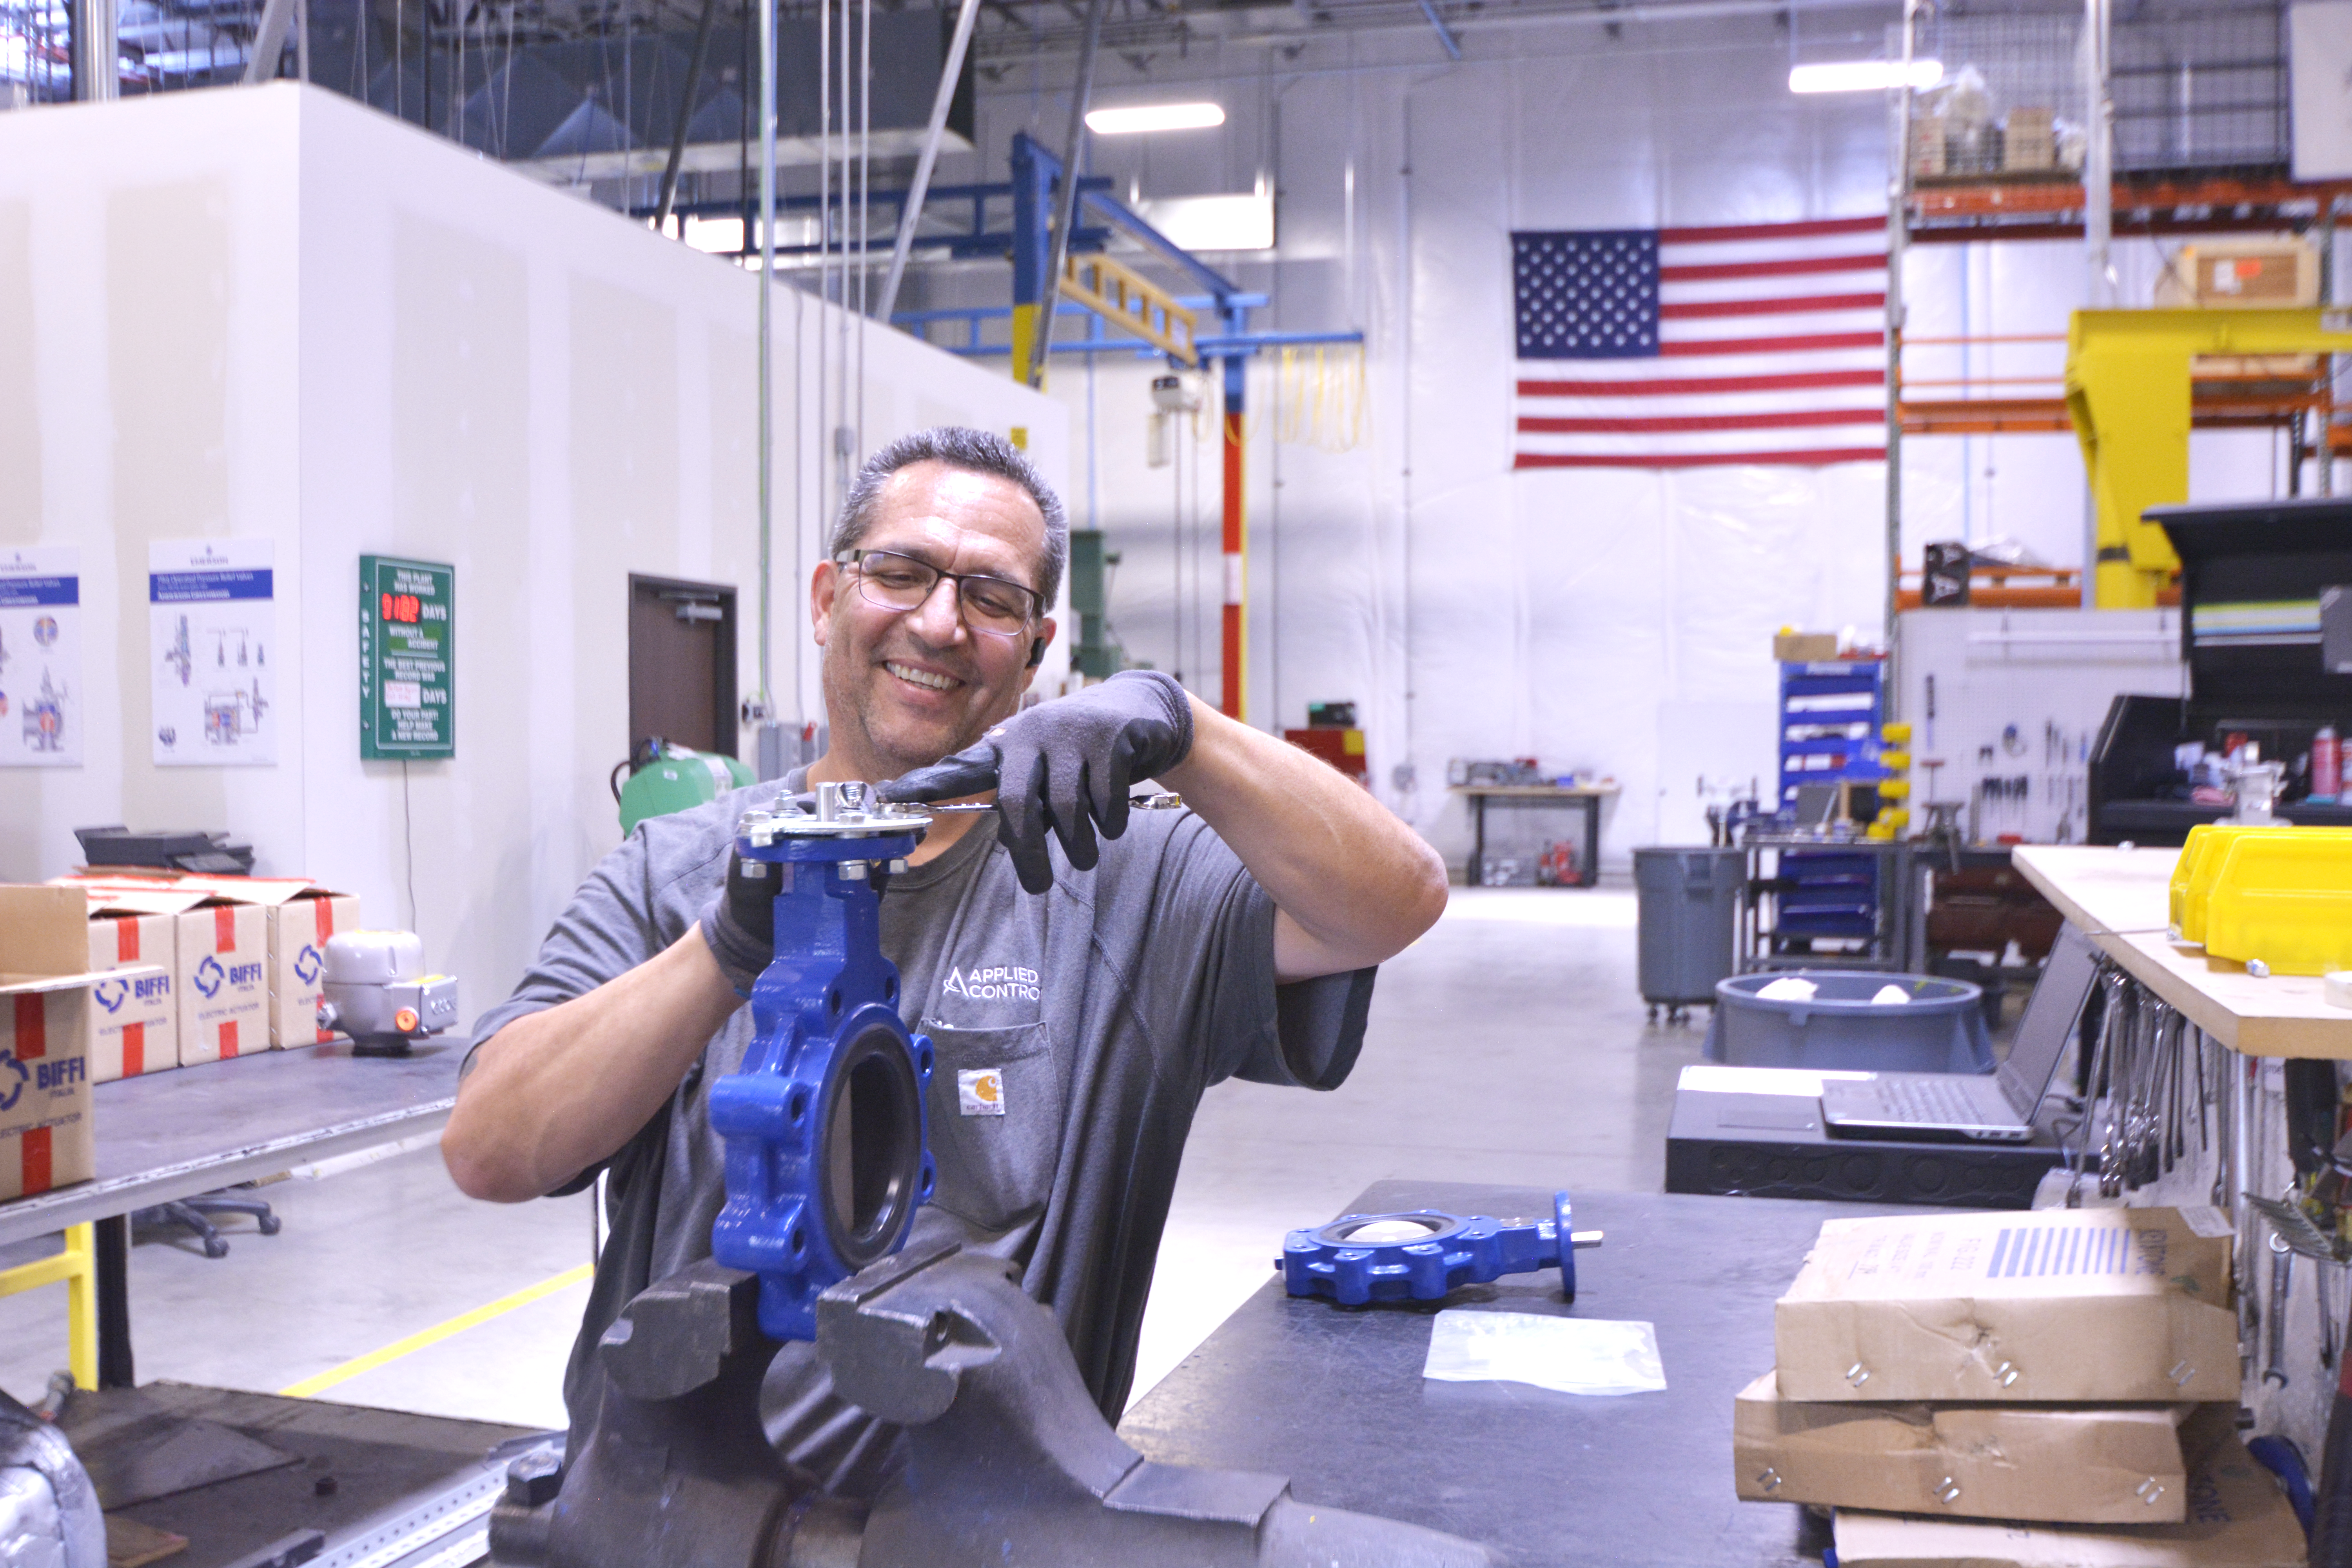 Our skilled shop technicians quickly assemble equipment for same-day pick-up